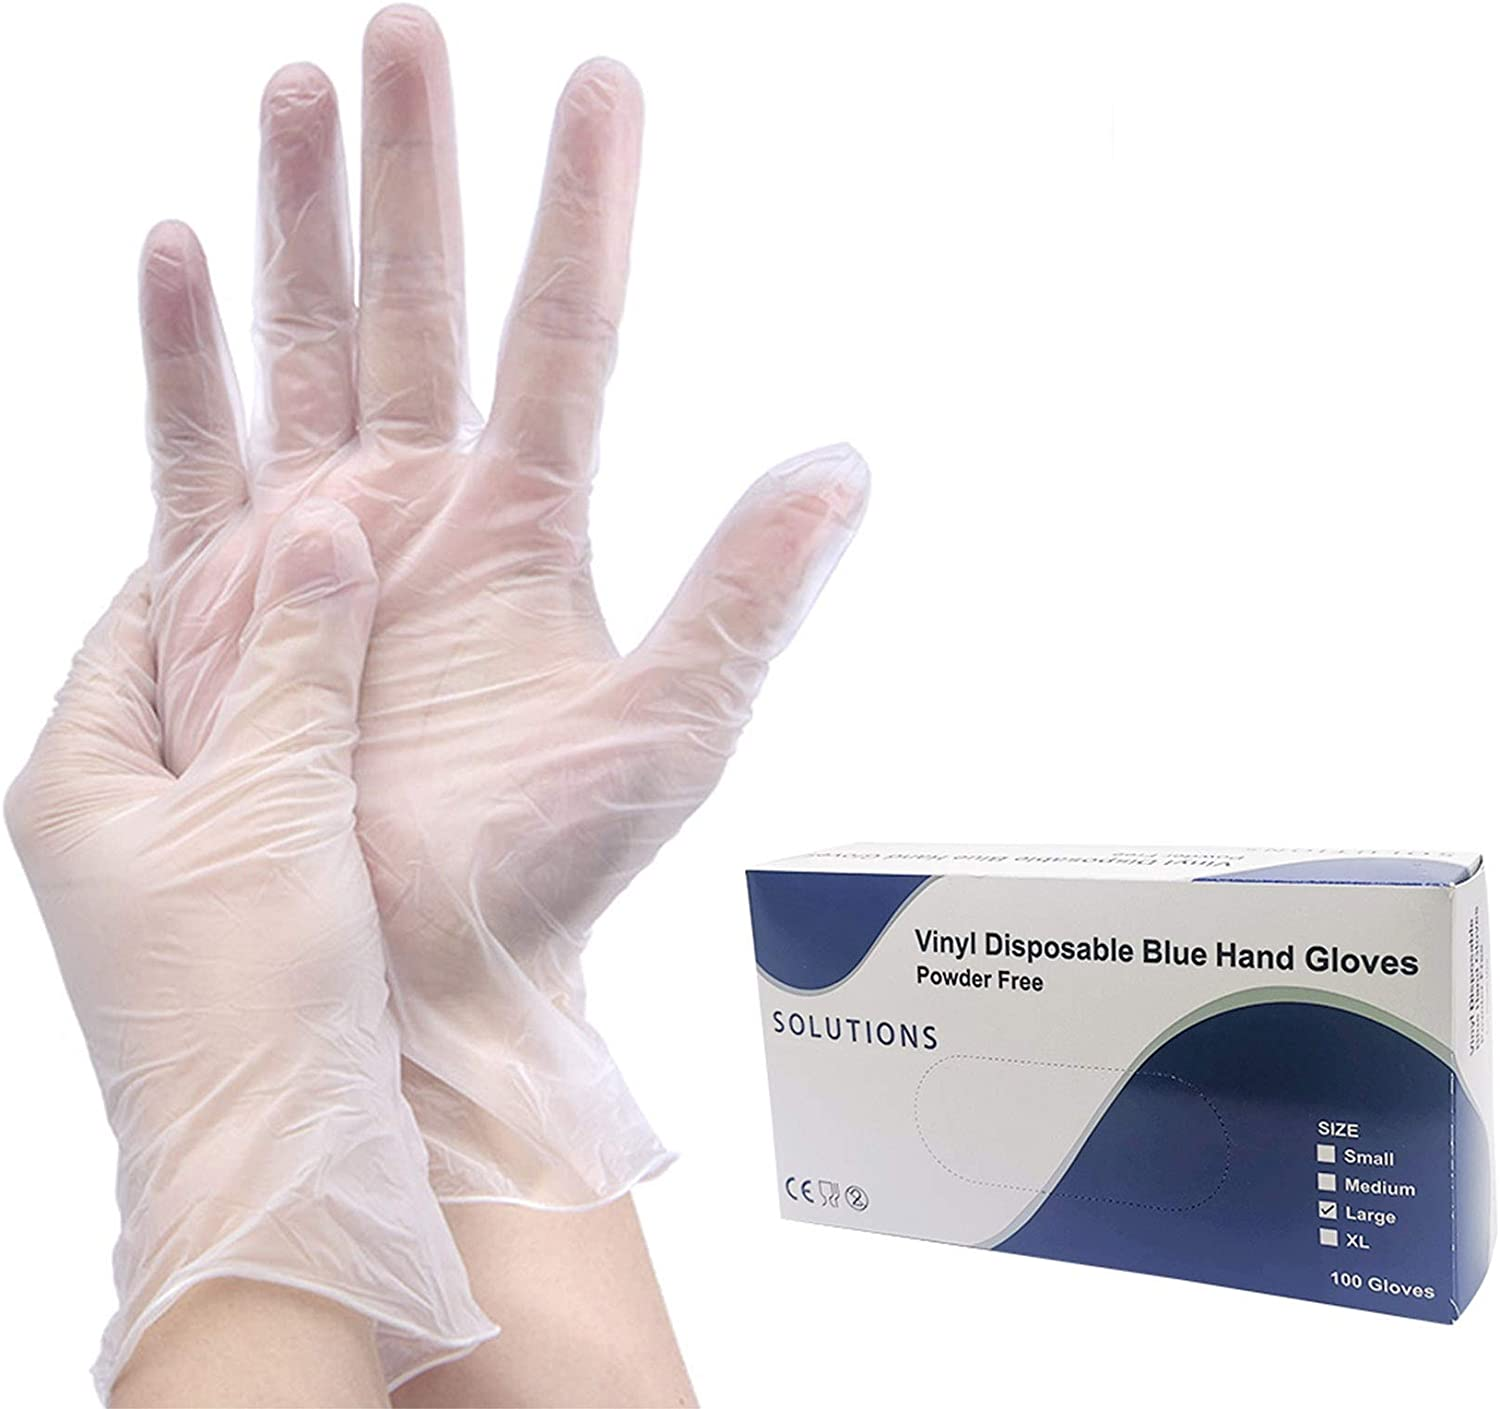 OKSANO Large Clear Vinyl Gloves, Case of 100,4 mil,Latex Free,Powder Free, Disposable, Non-Sterile Disposable Gloves-Ship from USA (L)